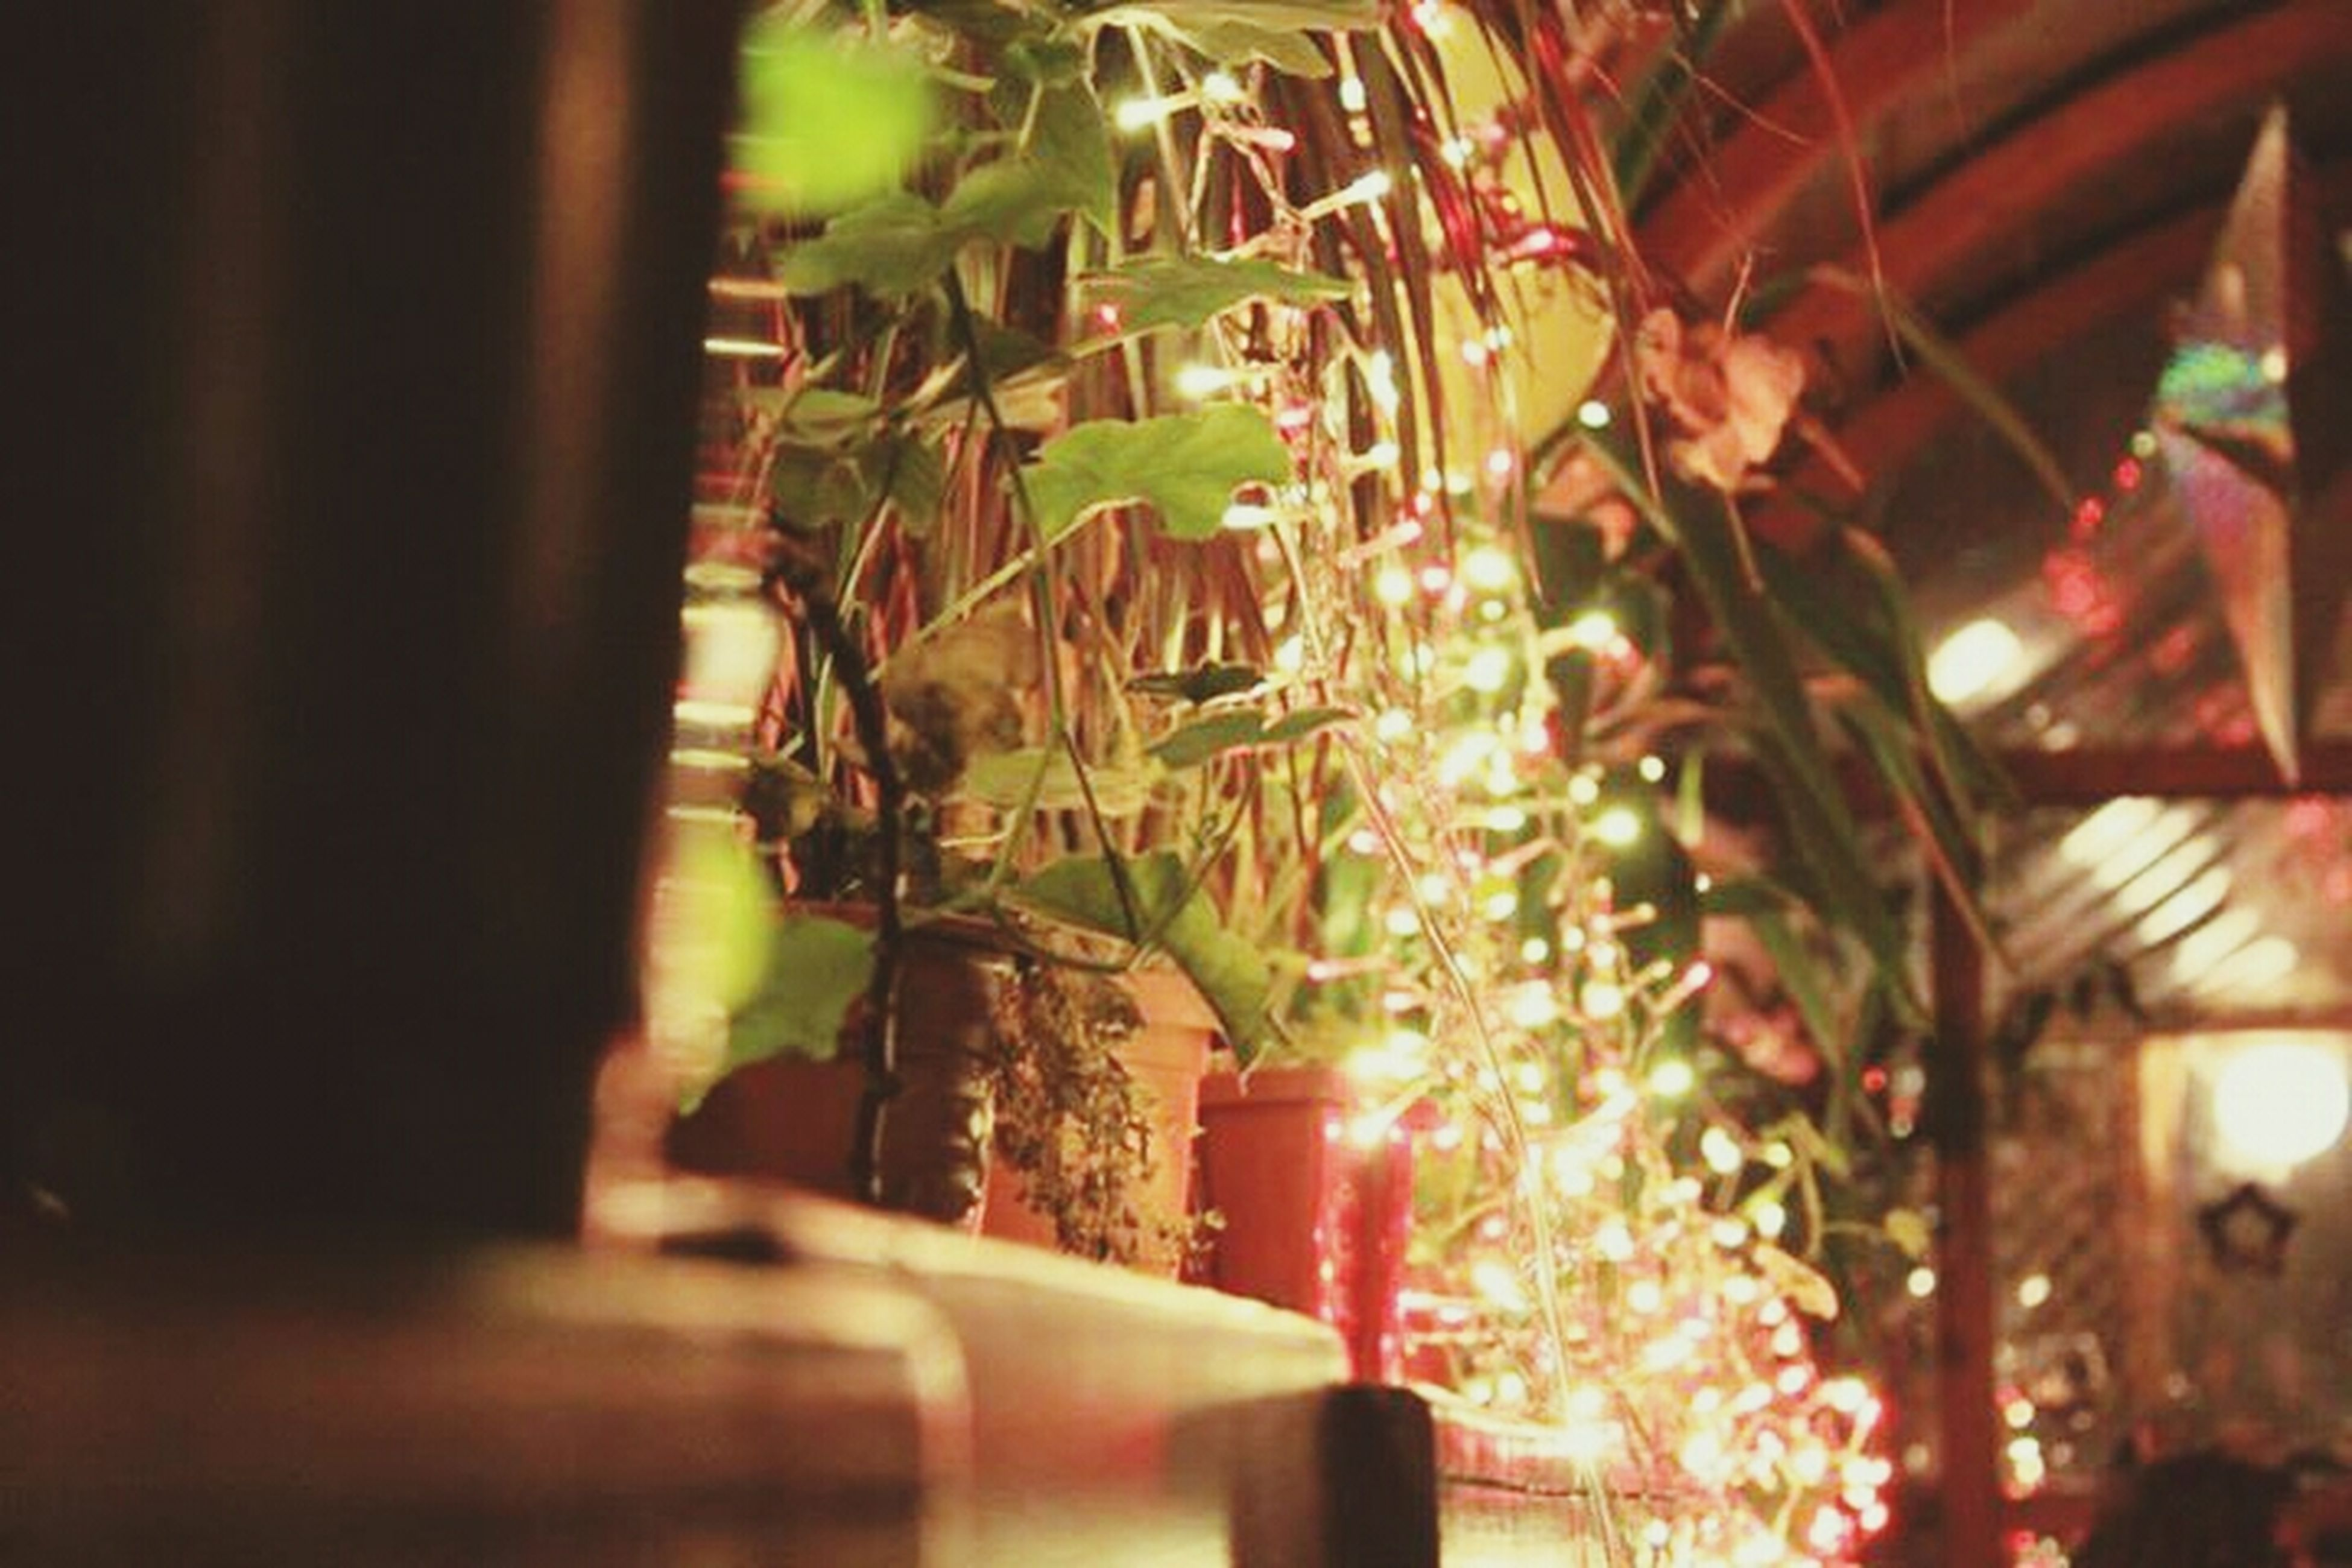 indoors, illuminated, decoration, hanging, selective focus, low angle view, growth, lighting equipment, close-up, tree, built structure, focus on foreground, plant, night, architecture, no people, potted plant, home interior, religion, branch